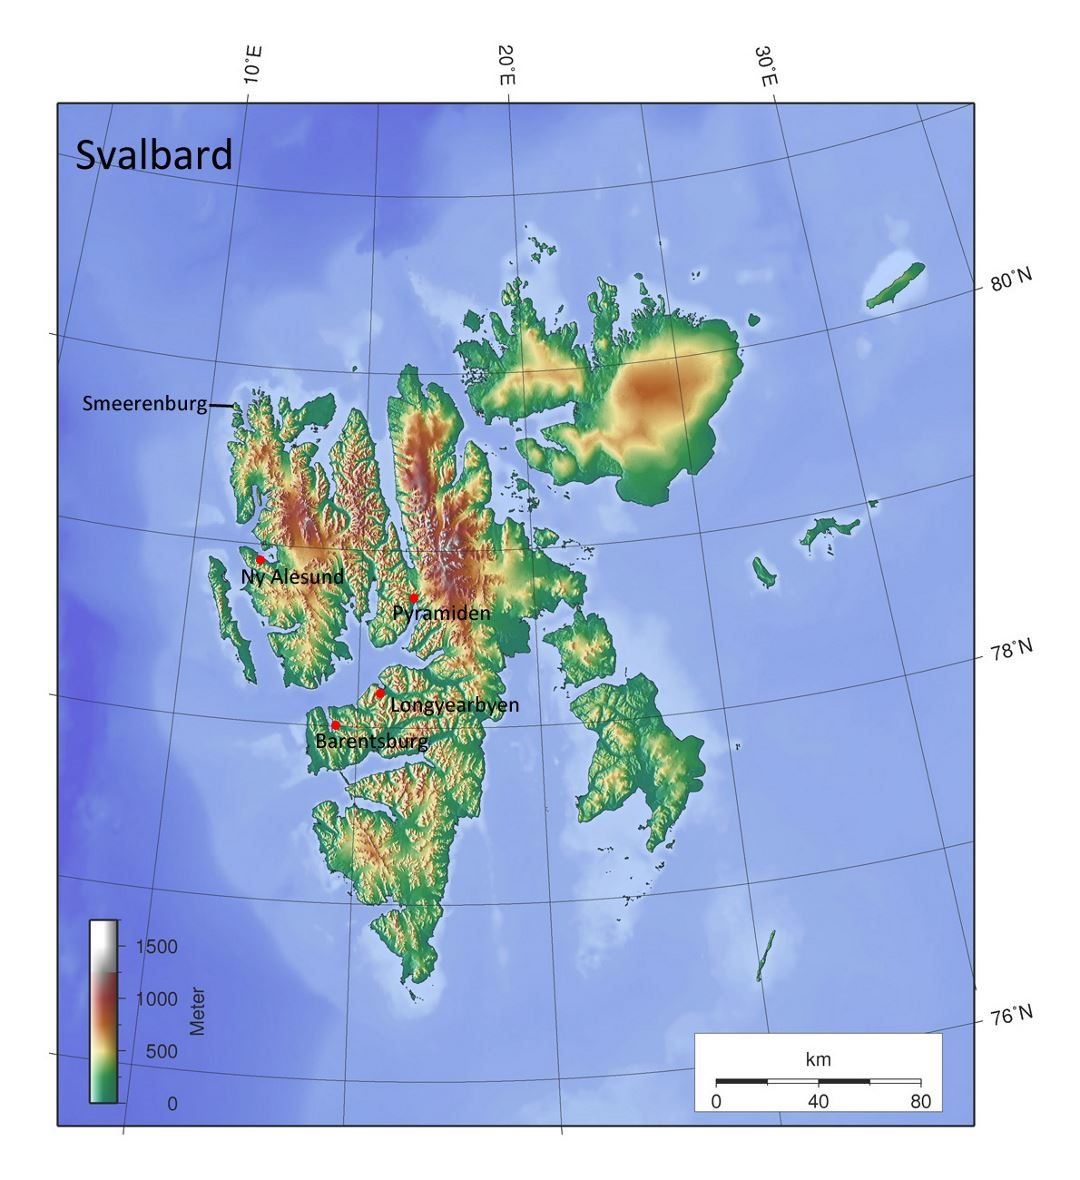 Detailed elevation map of Svalbard